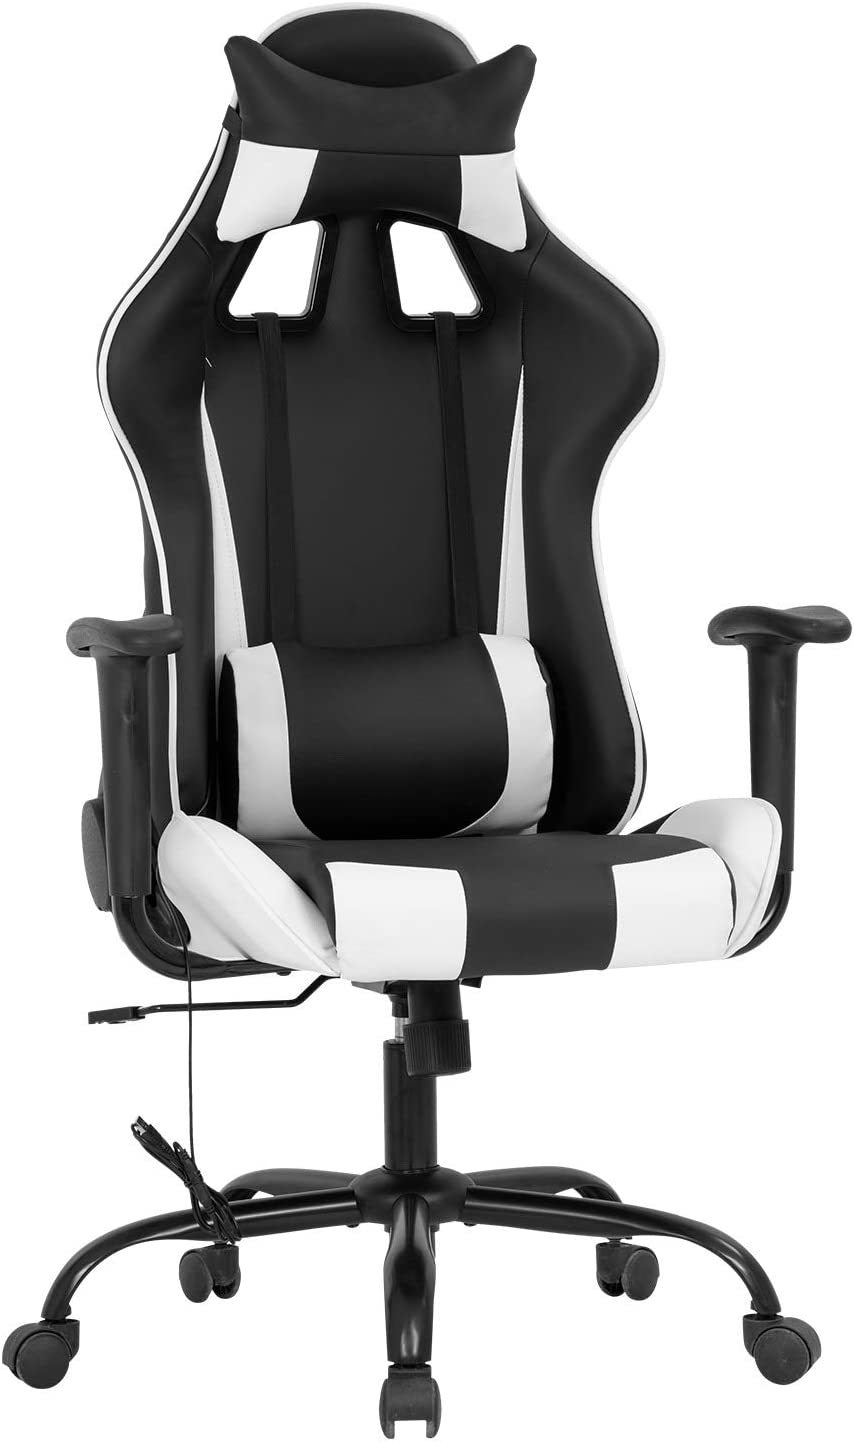 Amazon Com Gaming Chair Massage Office Chair Racing Desk Chair Pu Leather Rolling Task Adjustable Computer Chair With Lumbar Support Headrest Armrest Swivel Chair For Gamer White Furniture Decor